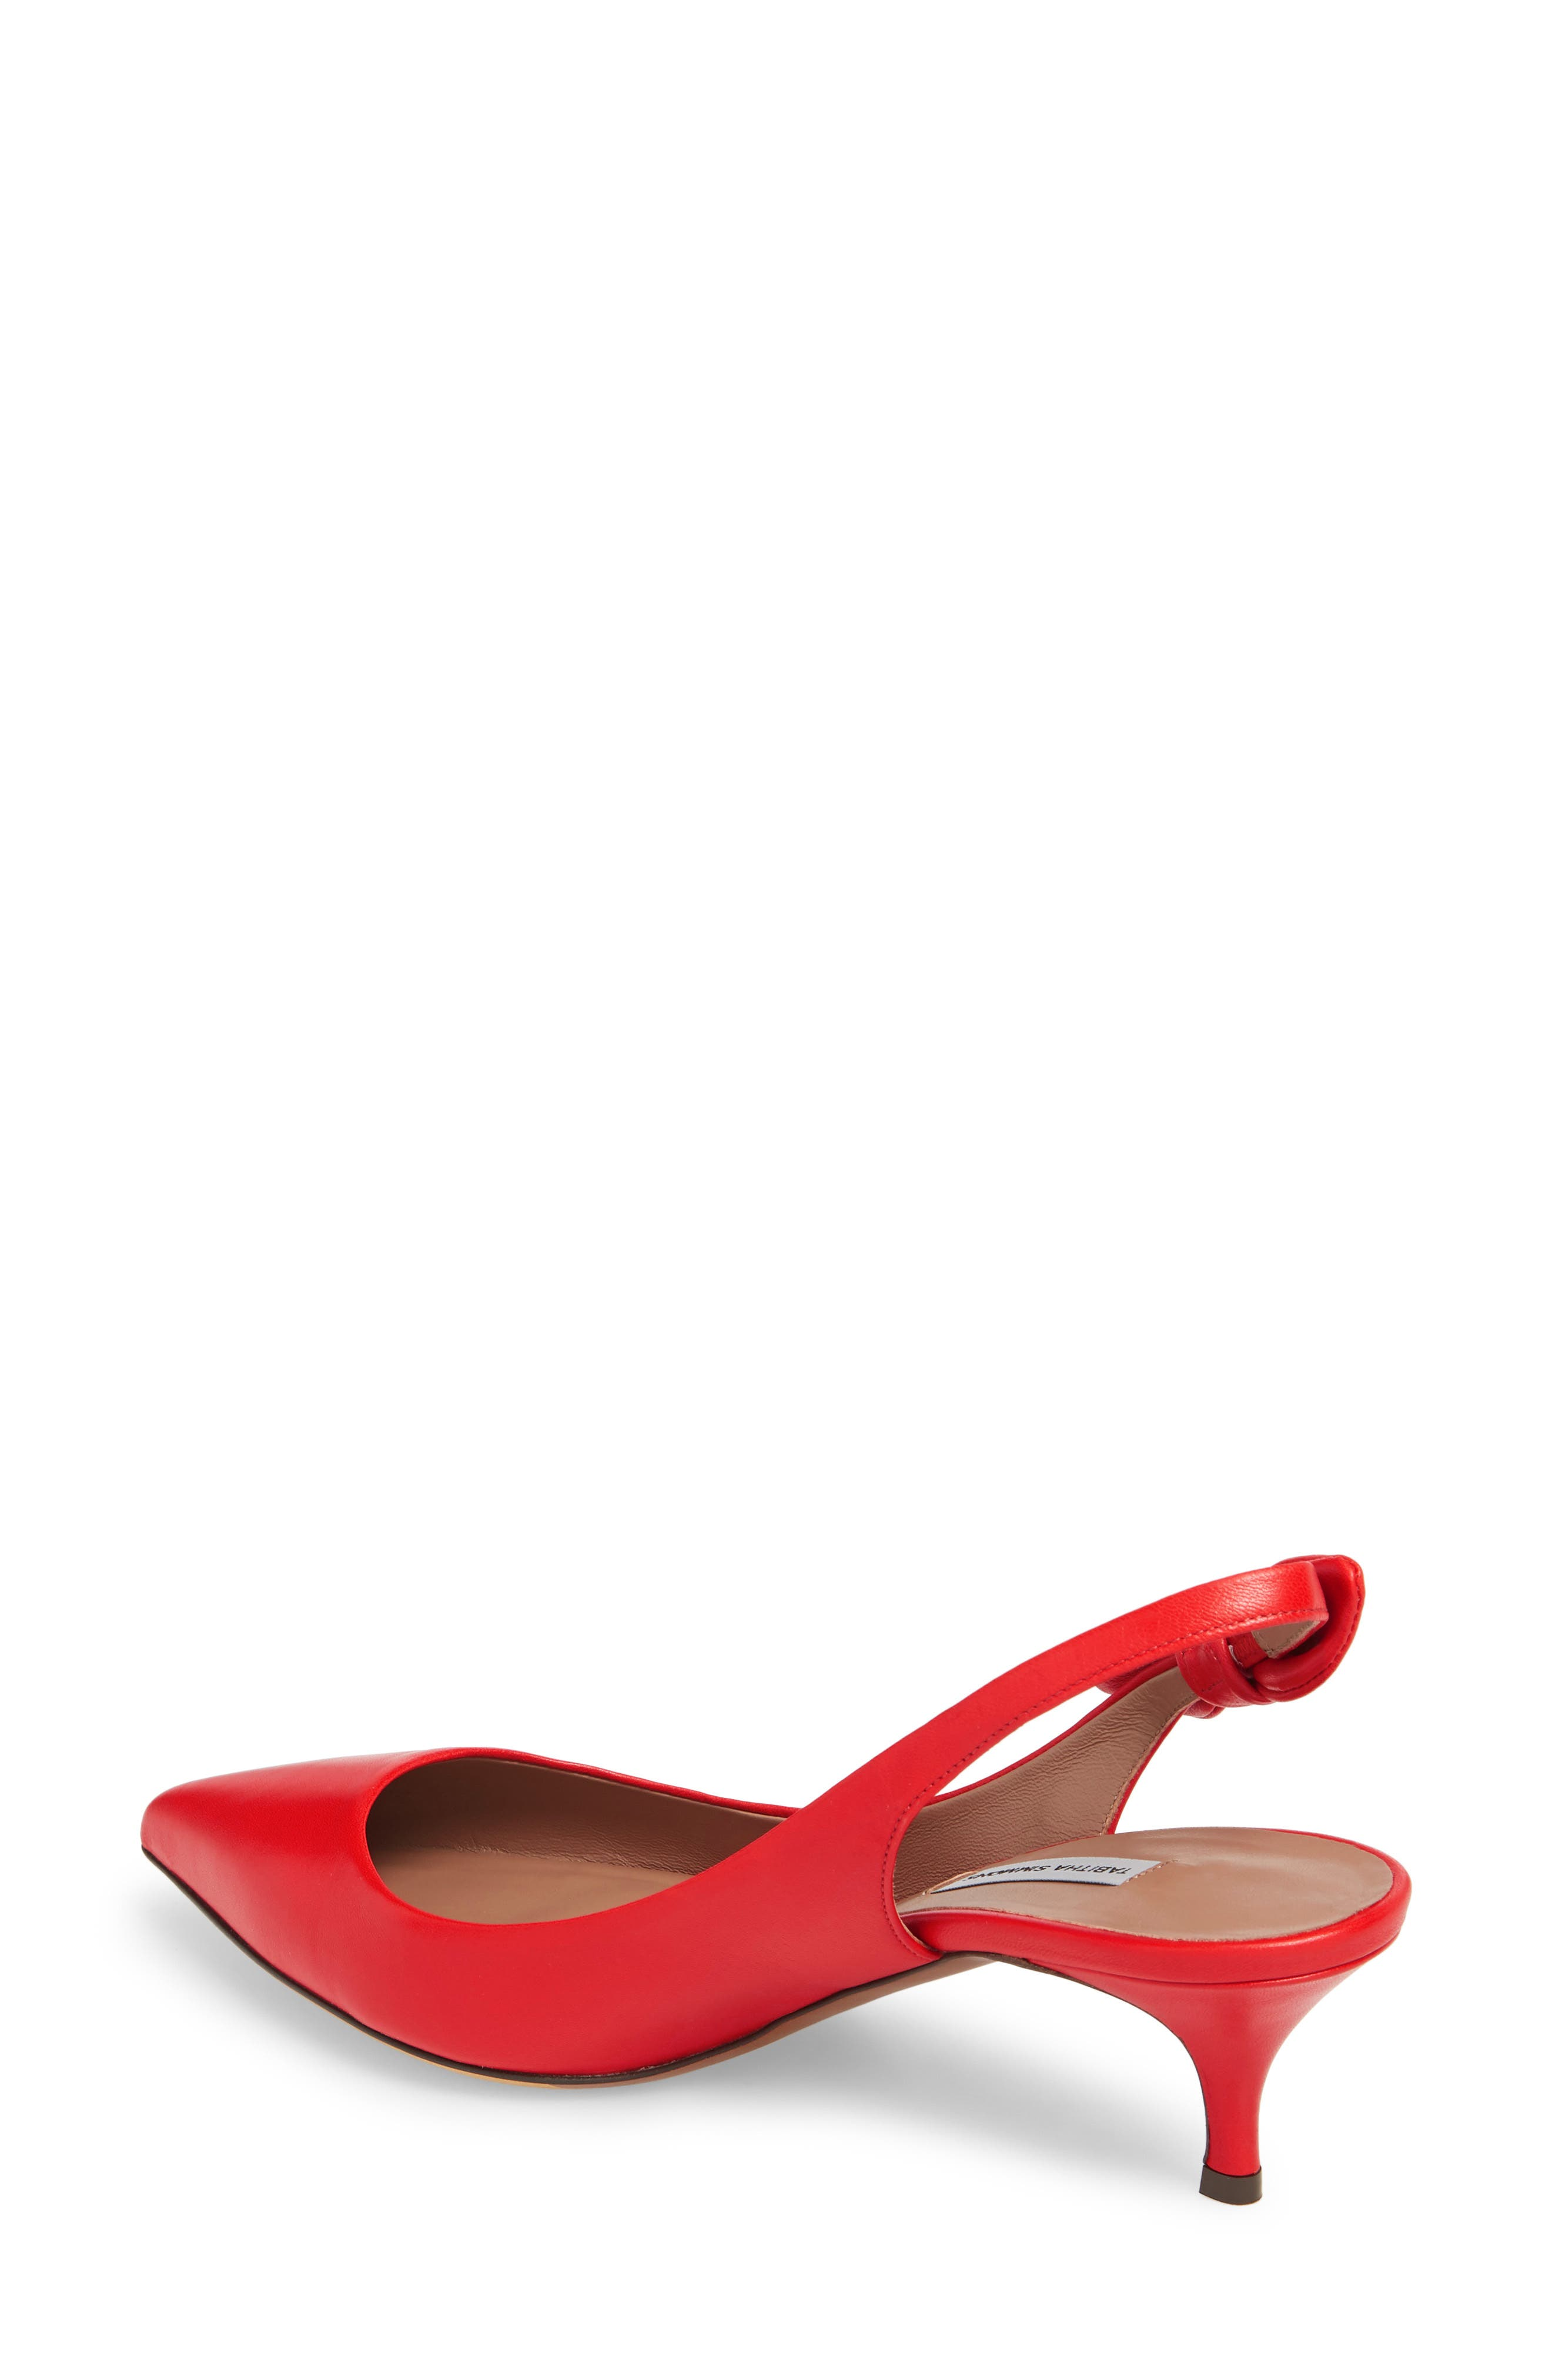 Rise Bow Slingback Pump,                             Alternate thumbnail 2, color,                             Red Leather